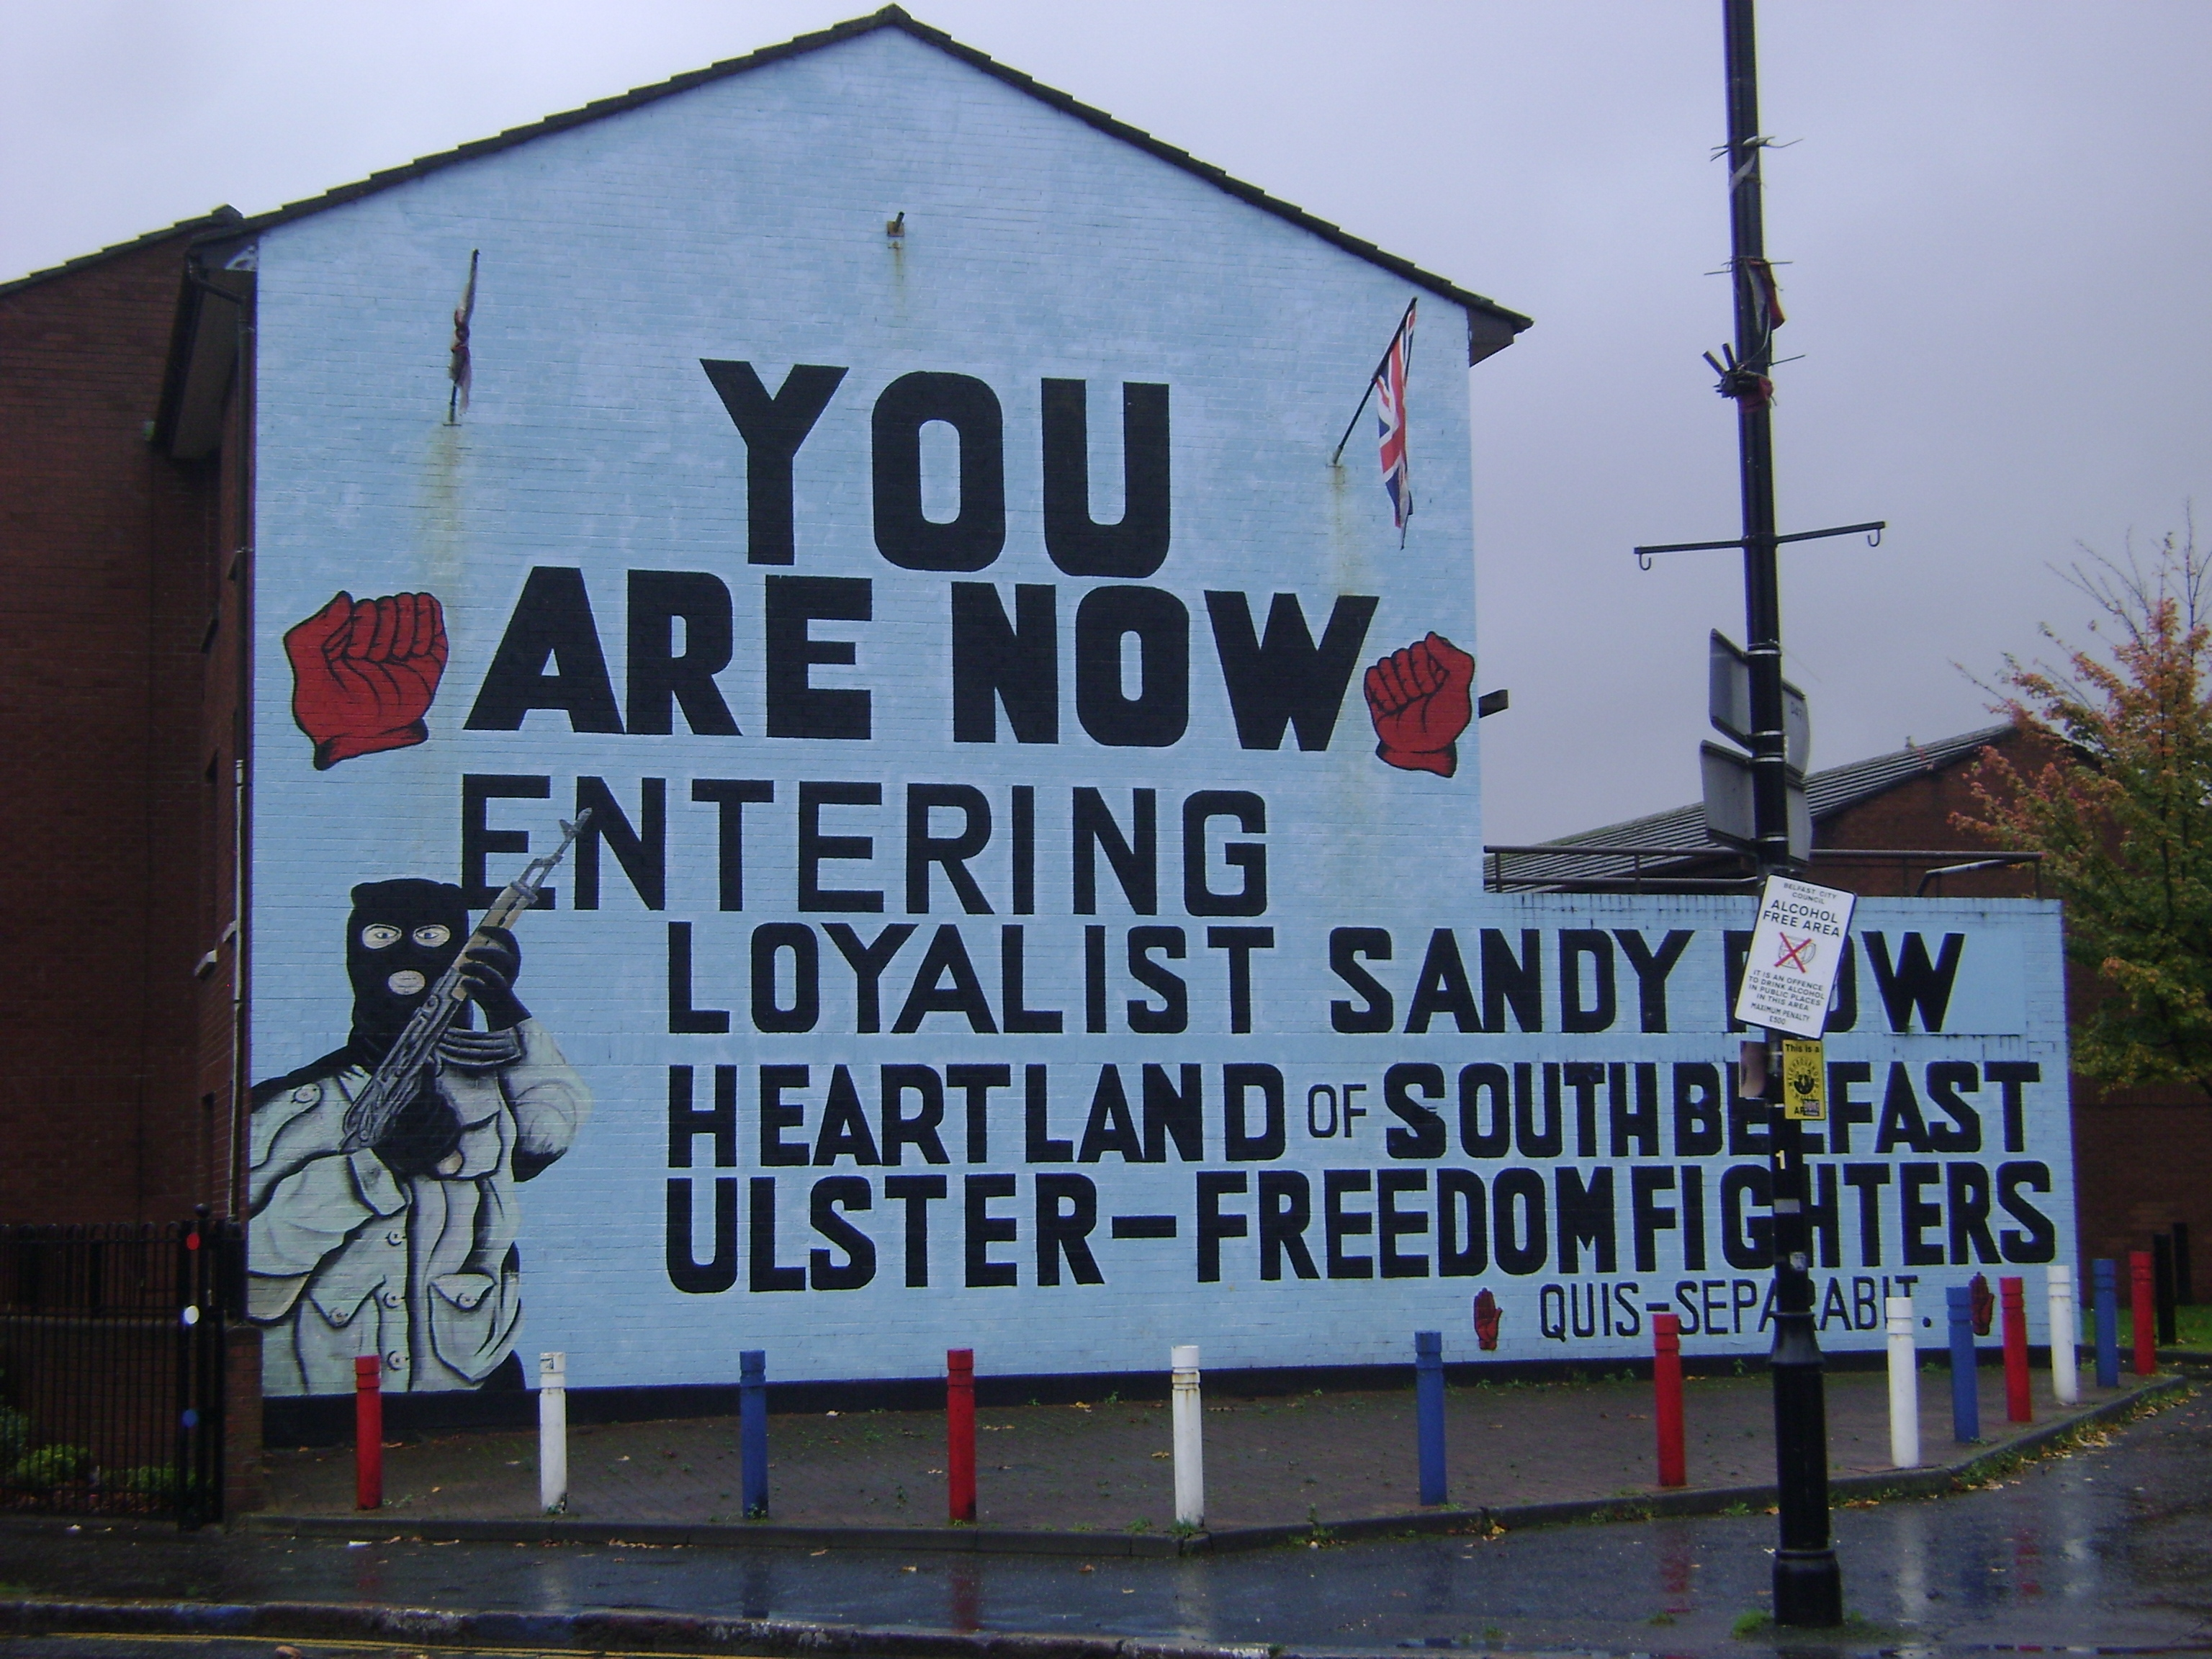 north ireland conflict essay The troubles between catholics and protestants in conflict the protagonists the troubles between catholics and protestants in northern ireland.